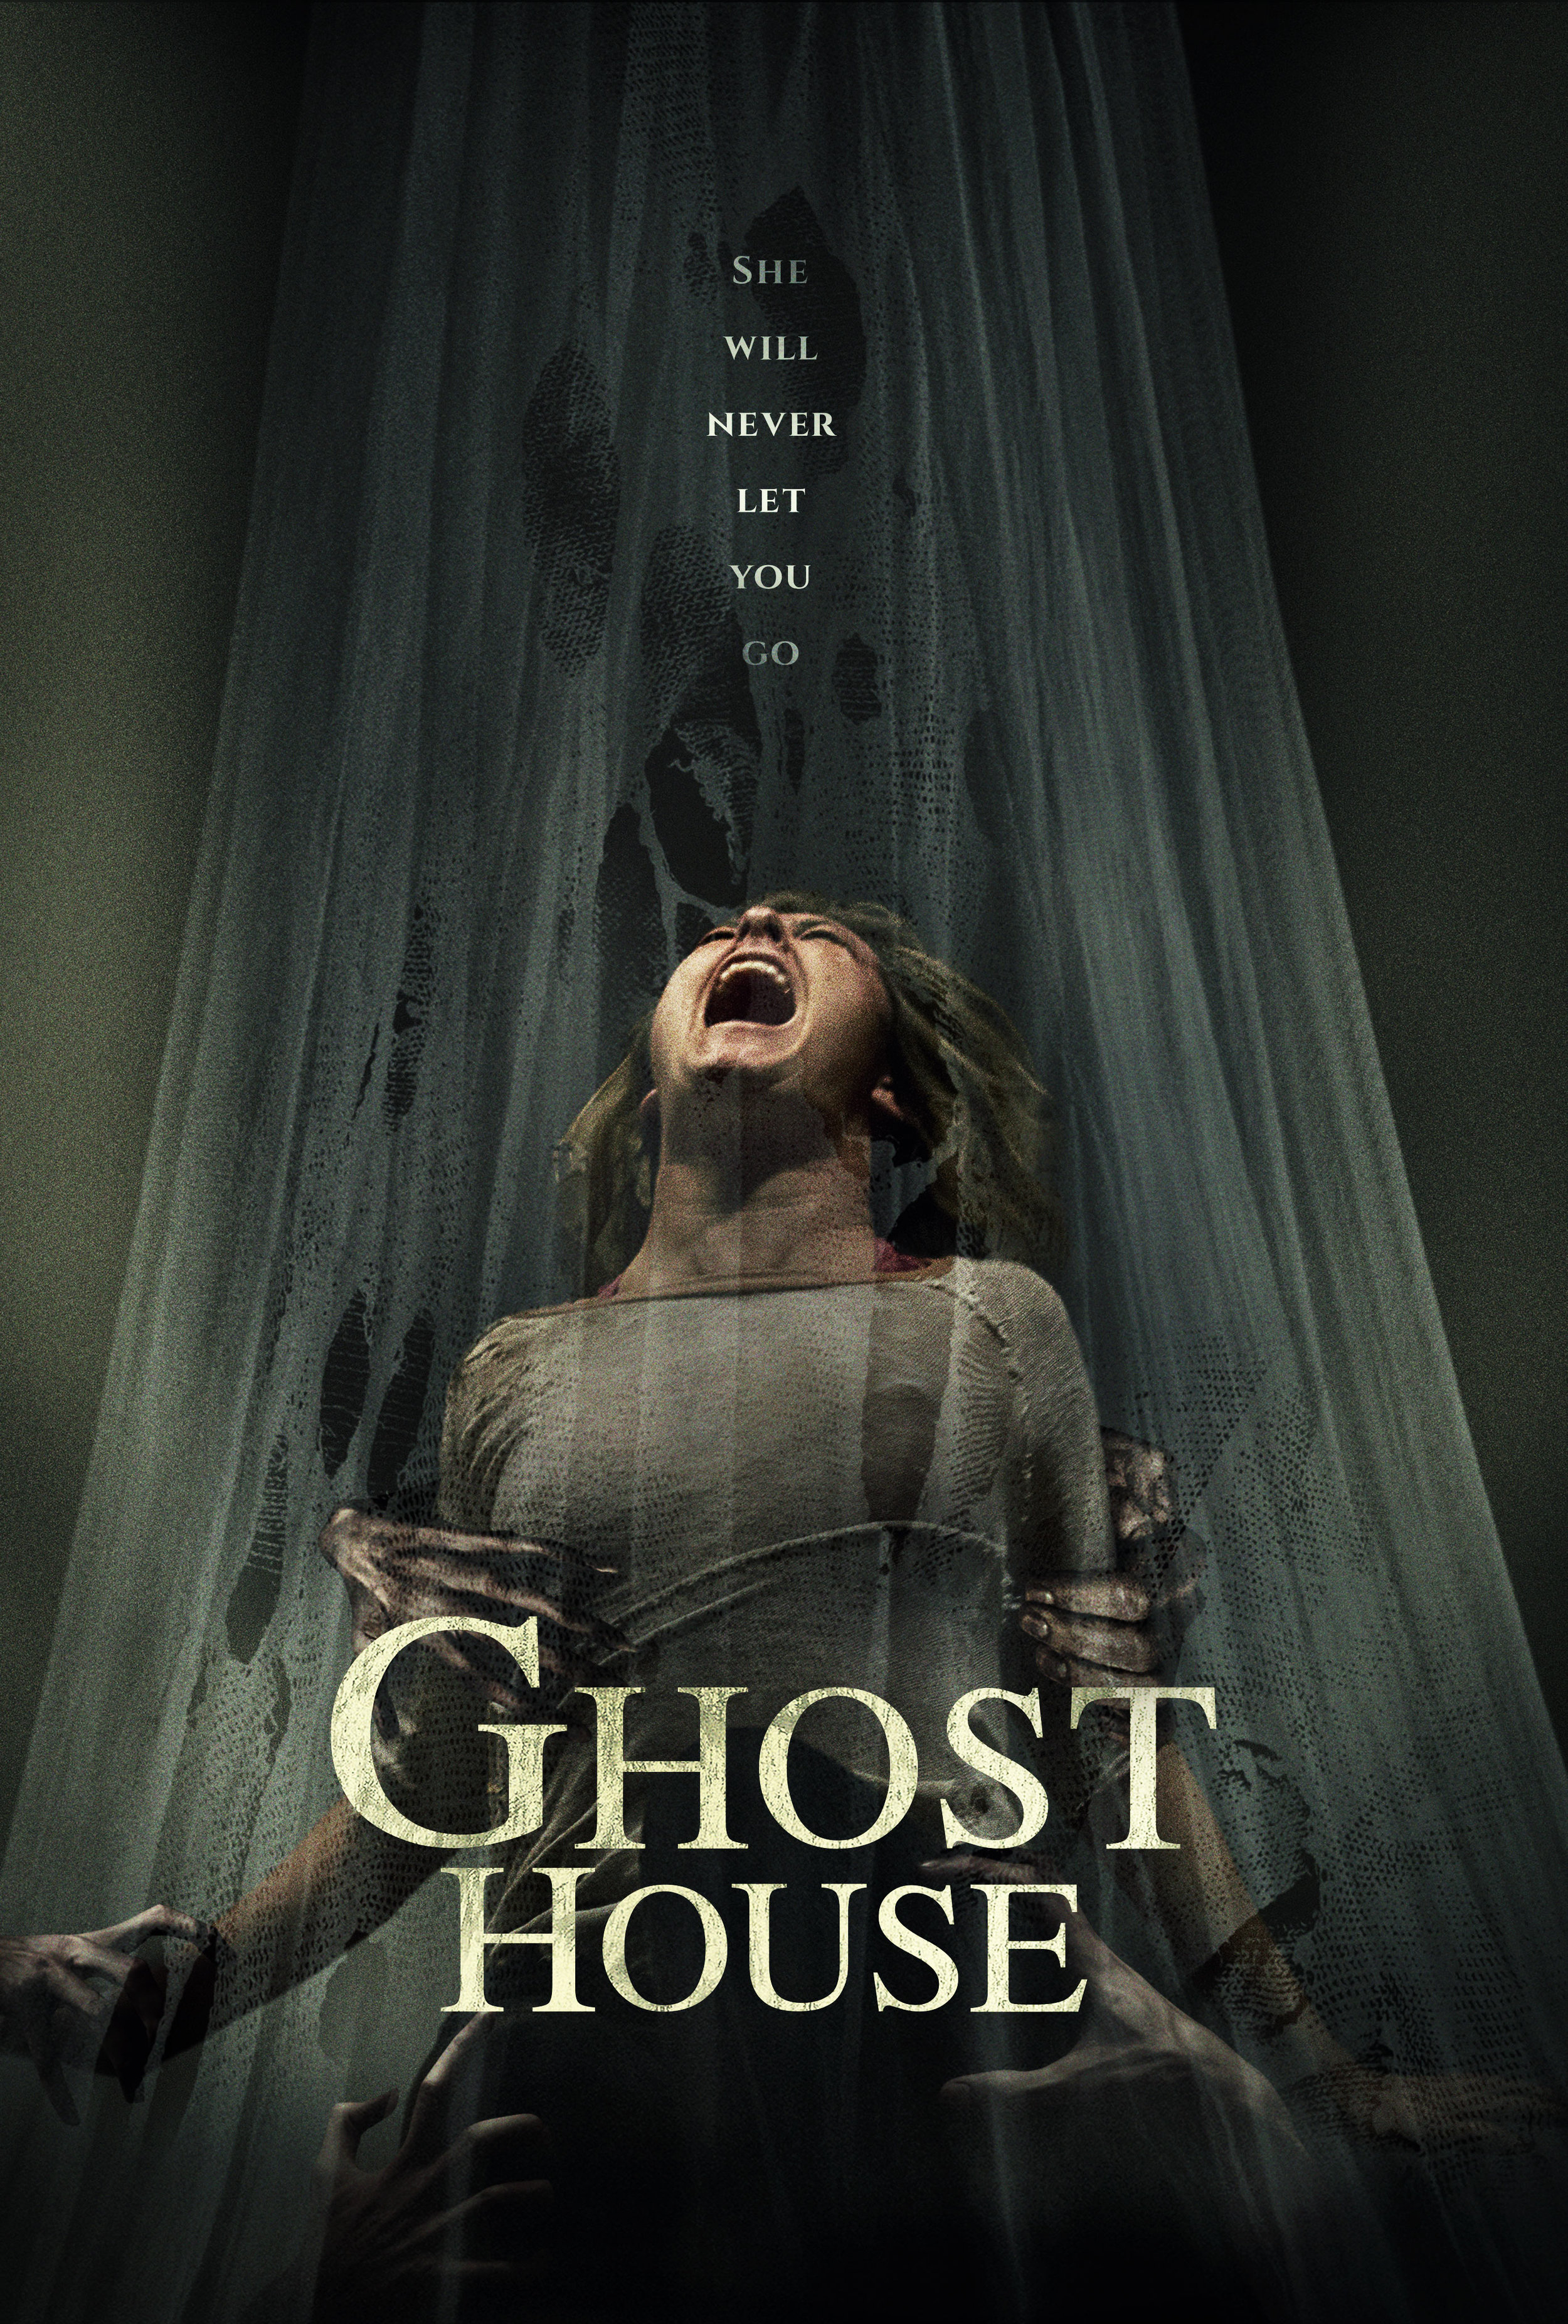 1h 29min    Lost in the Thai countryside, a young American couple find themselves haunted by an evil spirit. Desperate for a solution, they spiral deeper into a surreal, supernatural world that leads them into a frenzied, terrifying confrontation with pure evil.    Release date : 2017 ( USA )   Director :  Rich Ragsdale    Screenplay :  Jason Chase Tyrrell ,  Kevin O'Sullivan    Producers :  Kevin Ragsdale ,  Veronica Radaelli